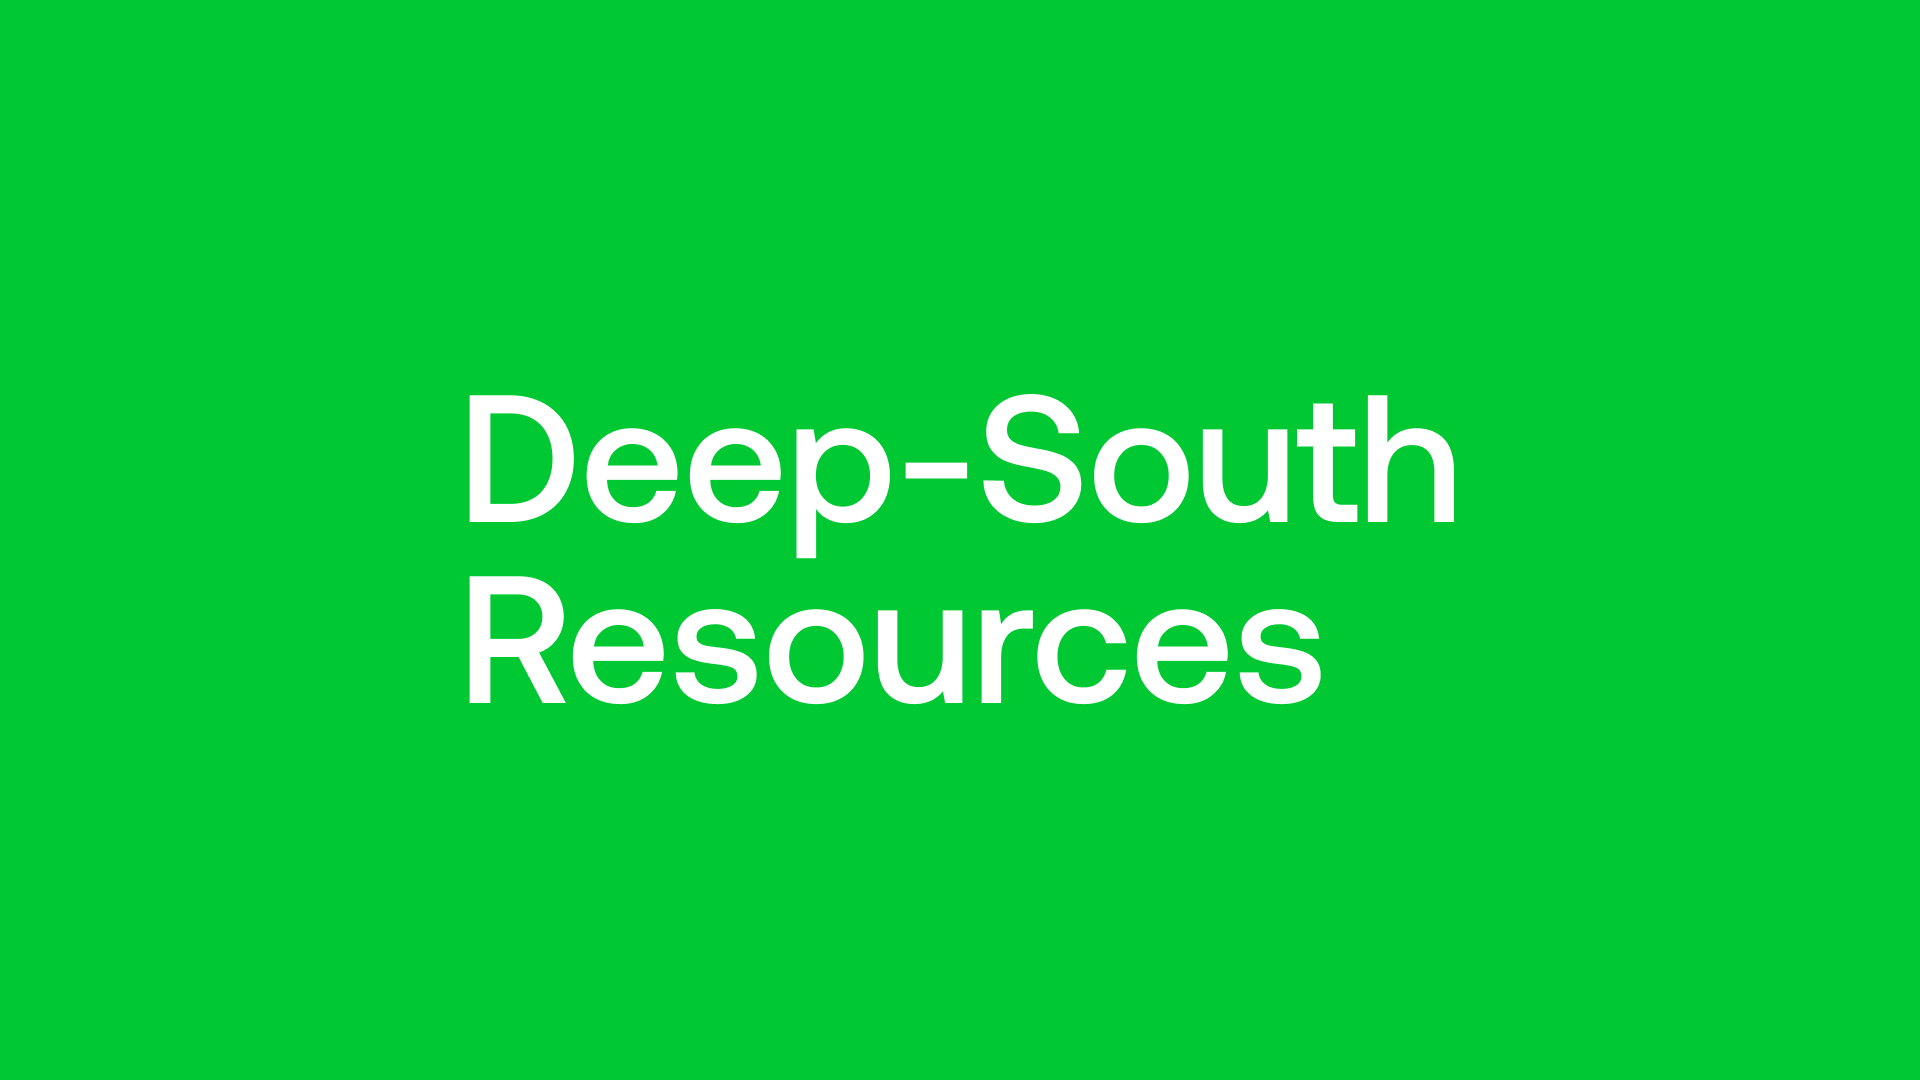 Deep-South Resources (DSM) - Targeting Large Copper Resource by Q4/21